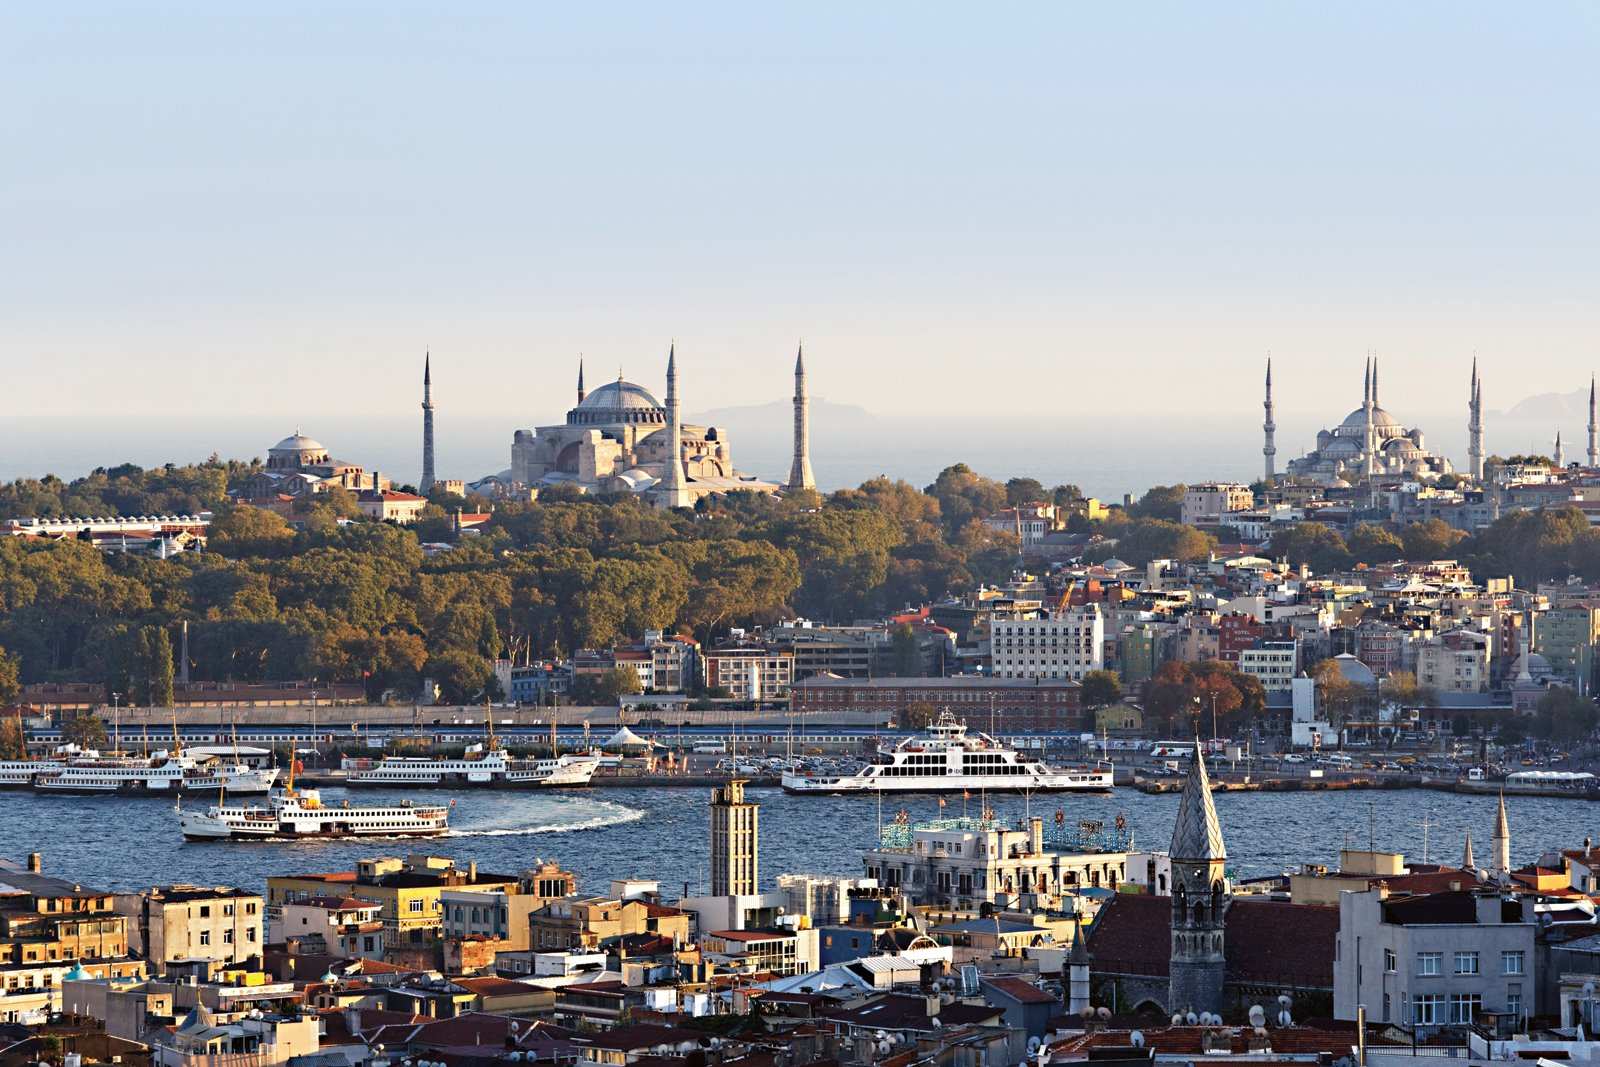 """Looking at Istanbul's old city from the trendy neighborhood of Beyoğlu, one can see the Hagia Sophia at left (rebuilt for the last time in the 6th century) and the 17th-century Sultanahmet (or """"Blue"""") Mosque with its six minarets at right.  Photo 1 of 2 in Istanbul, Turkey"""